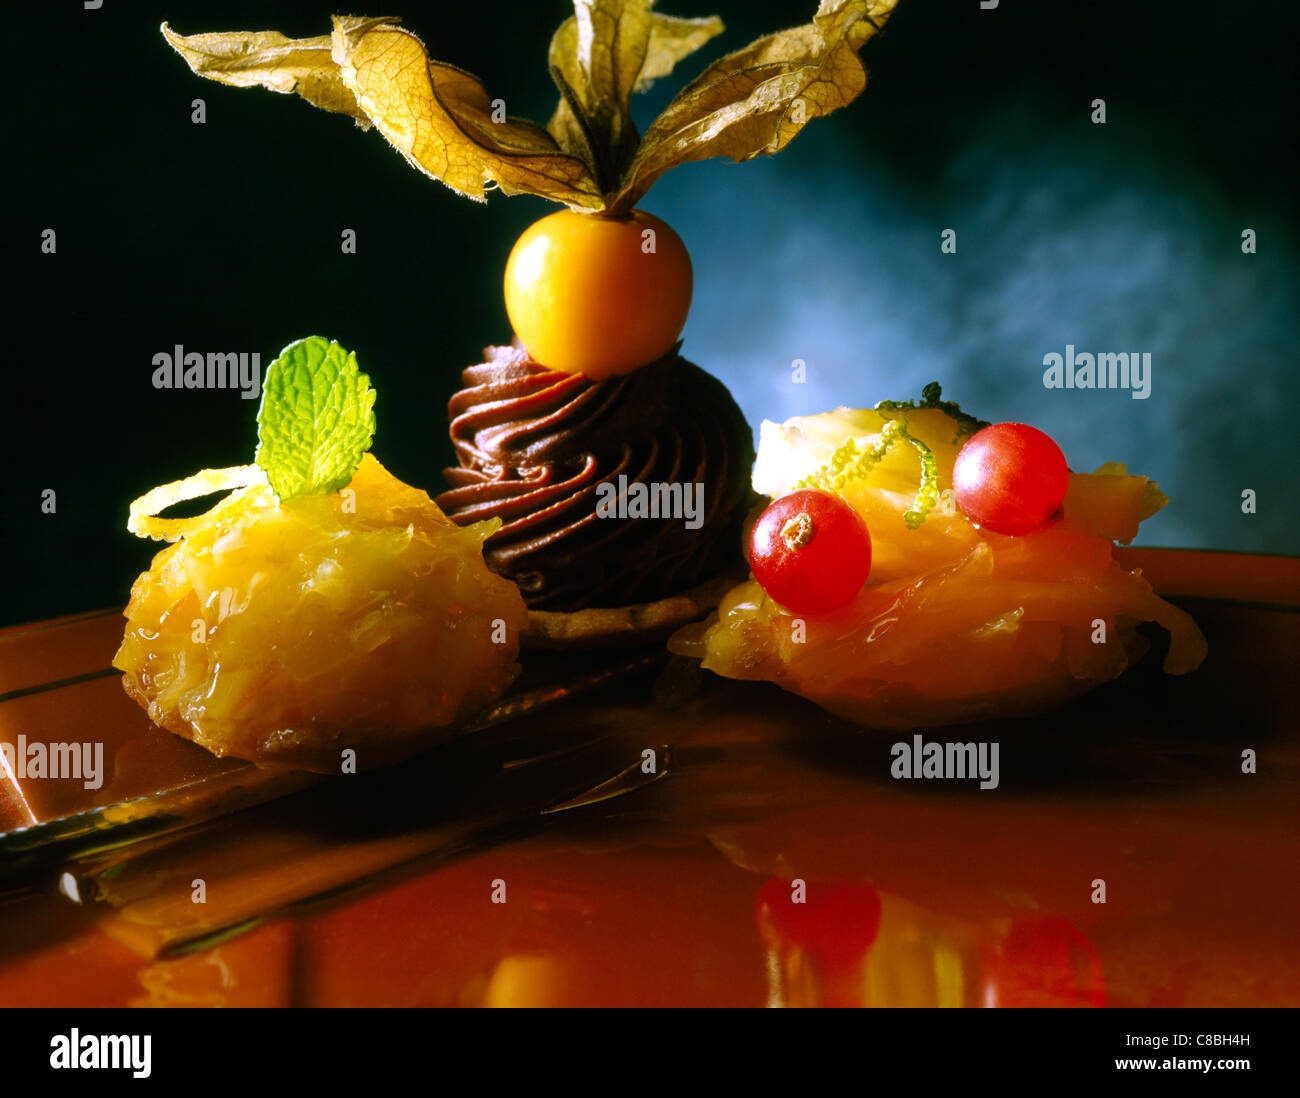 Three tartlet chocolate and fruit dessert by Pierre Hermé - Stock Image